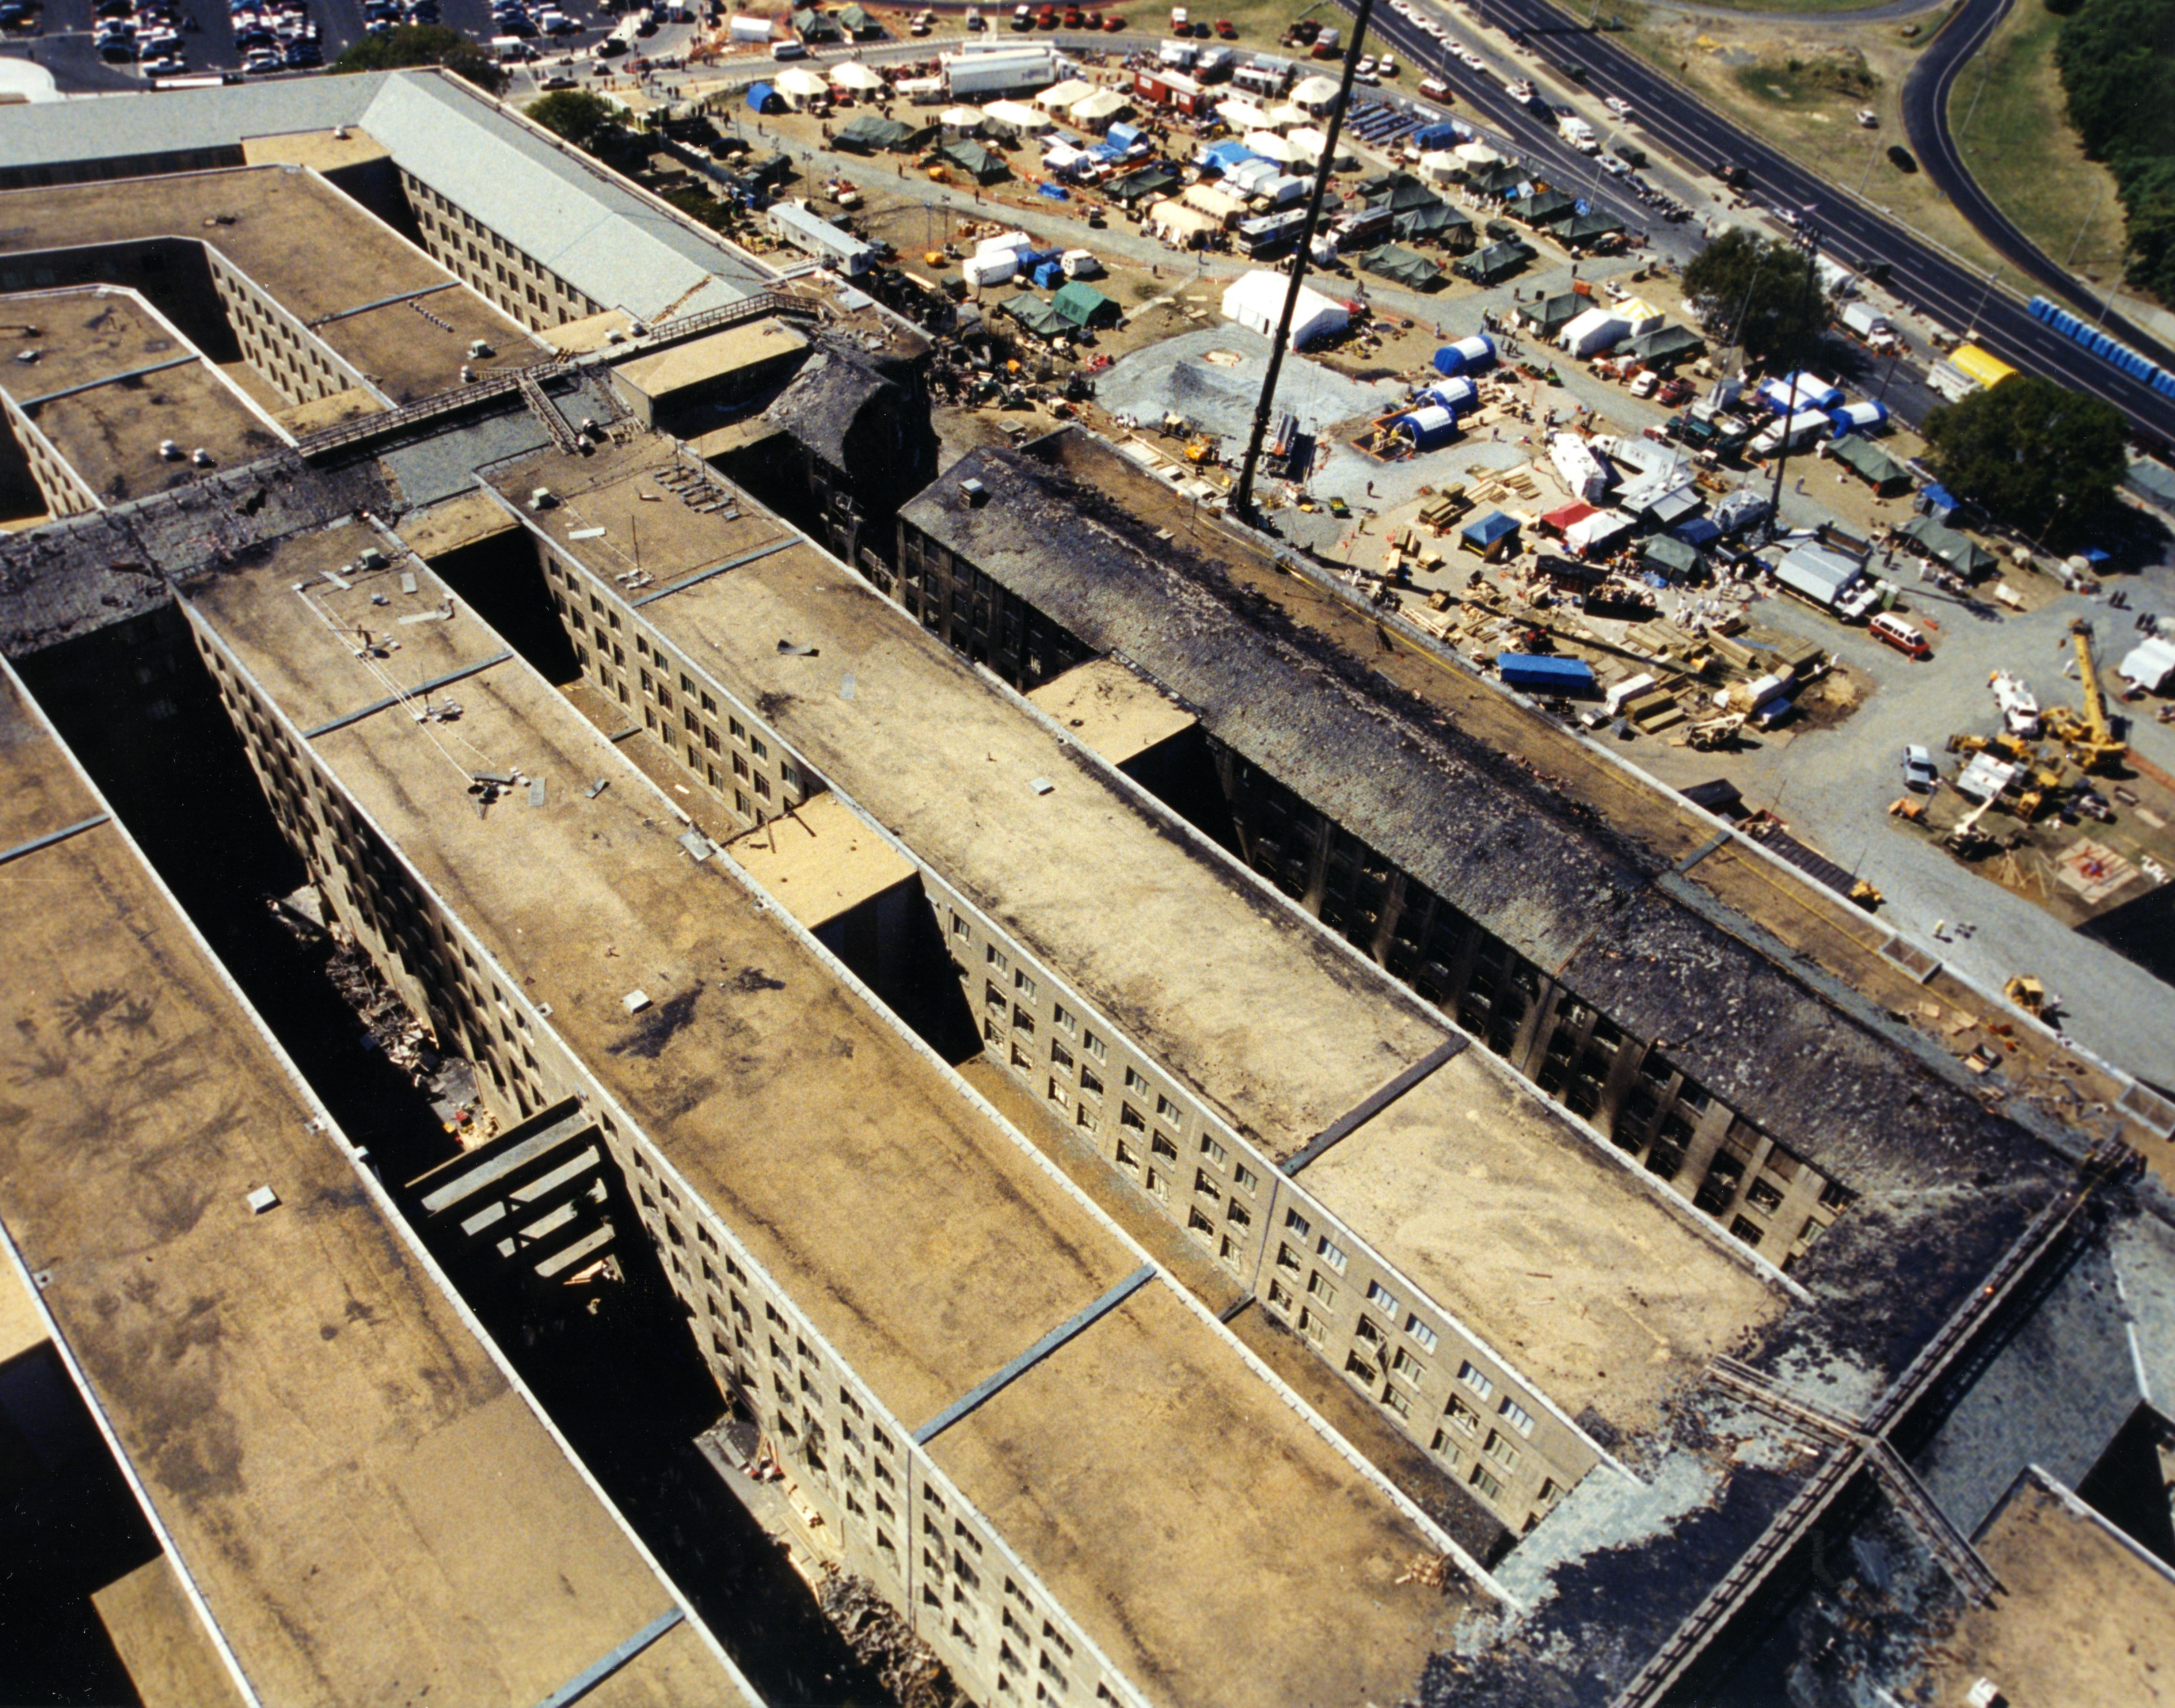 Overhead shot showing damage to the Pentagon following the attack on 9/11. (Pic: FBI)